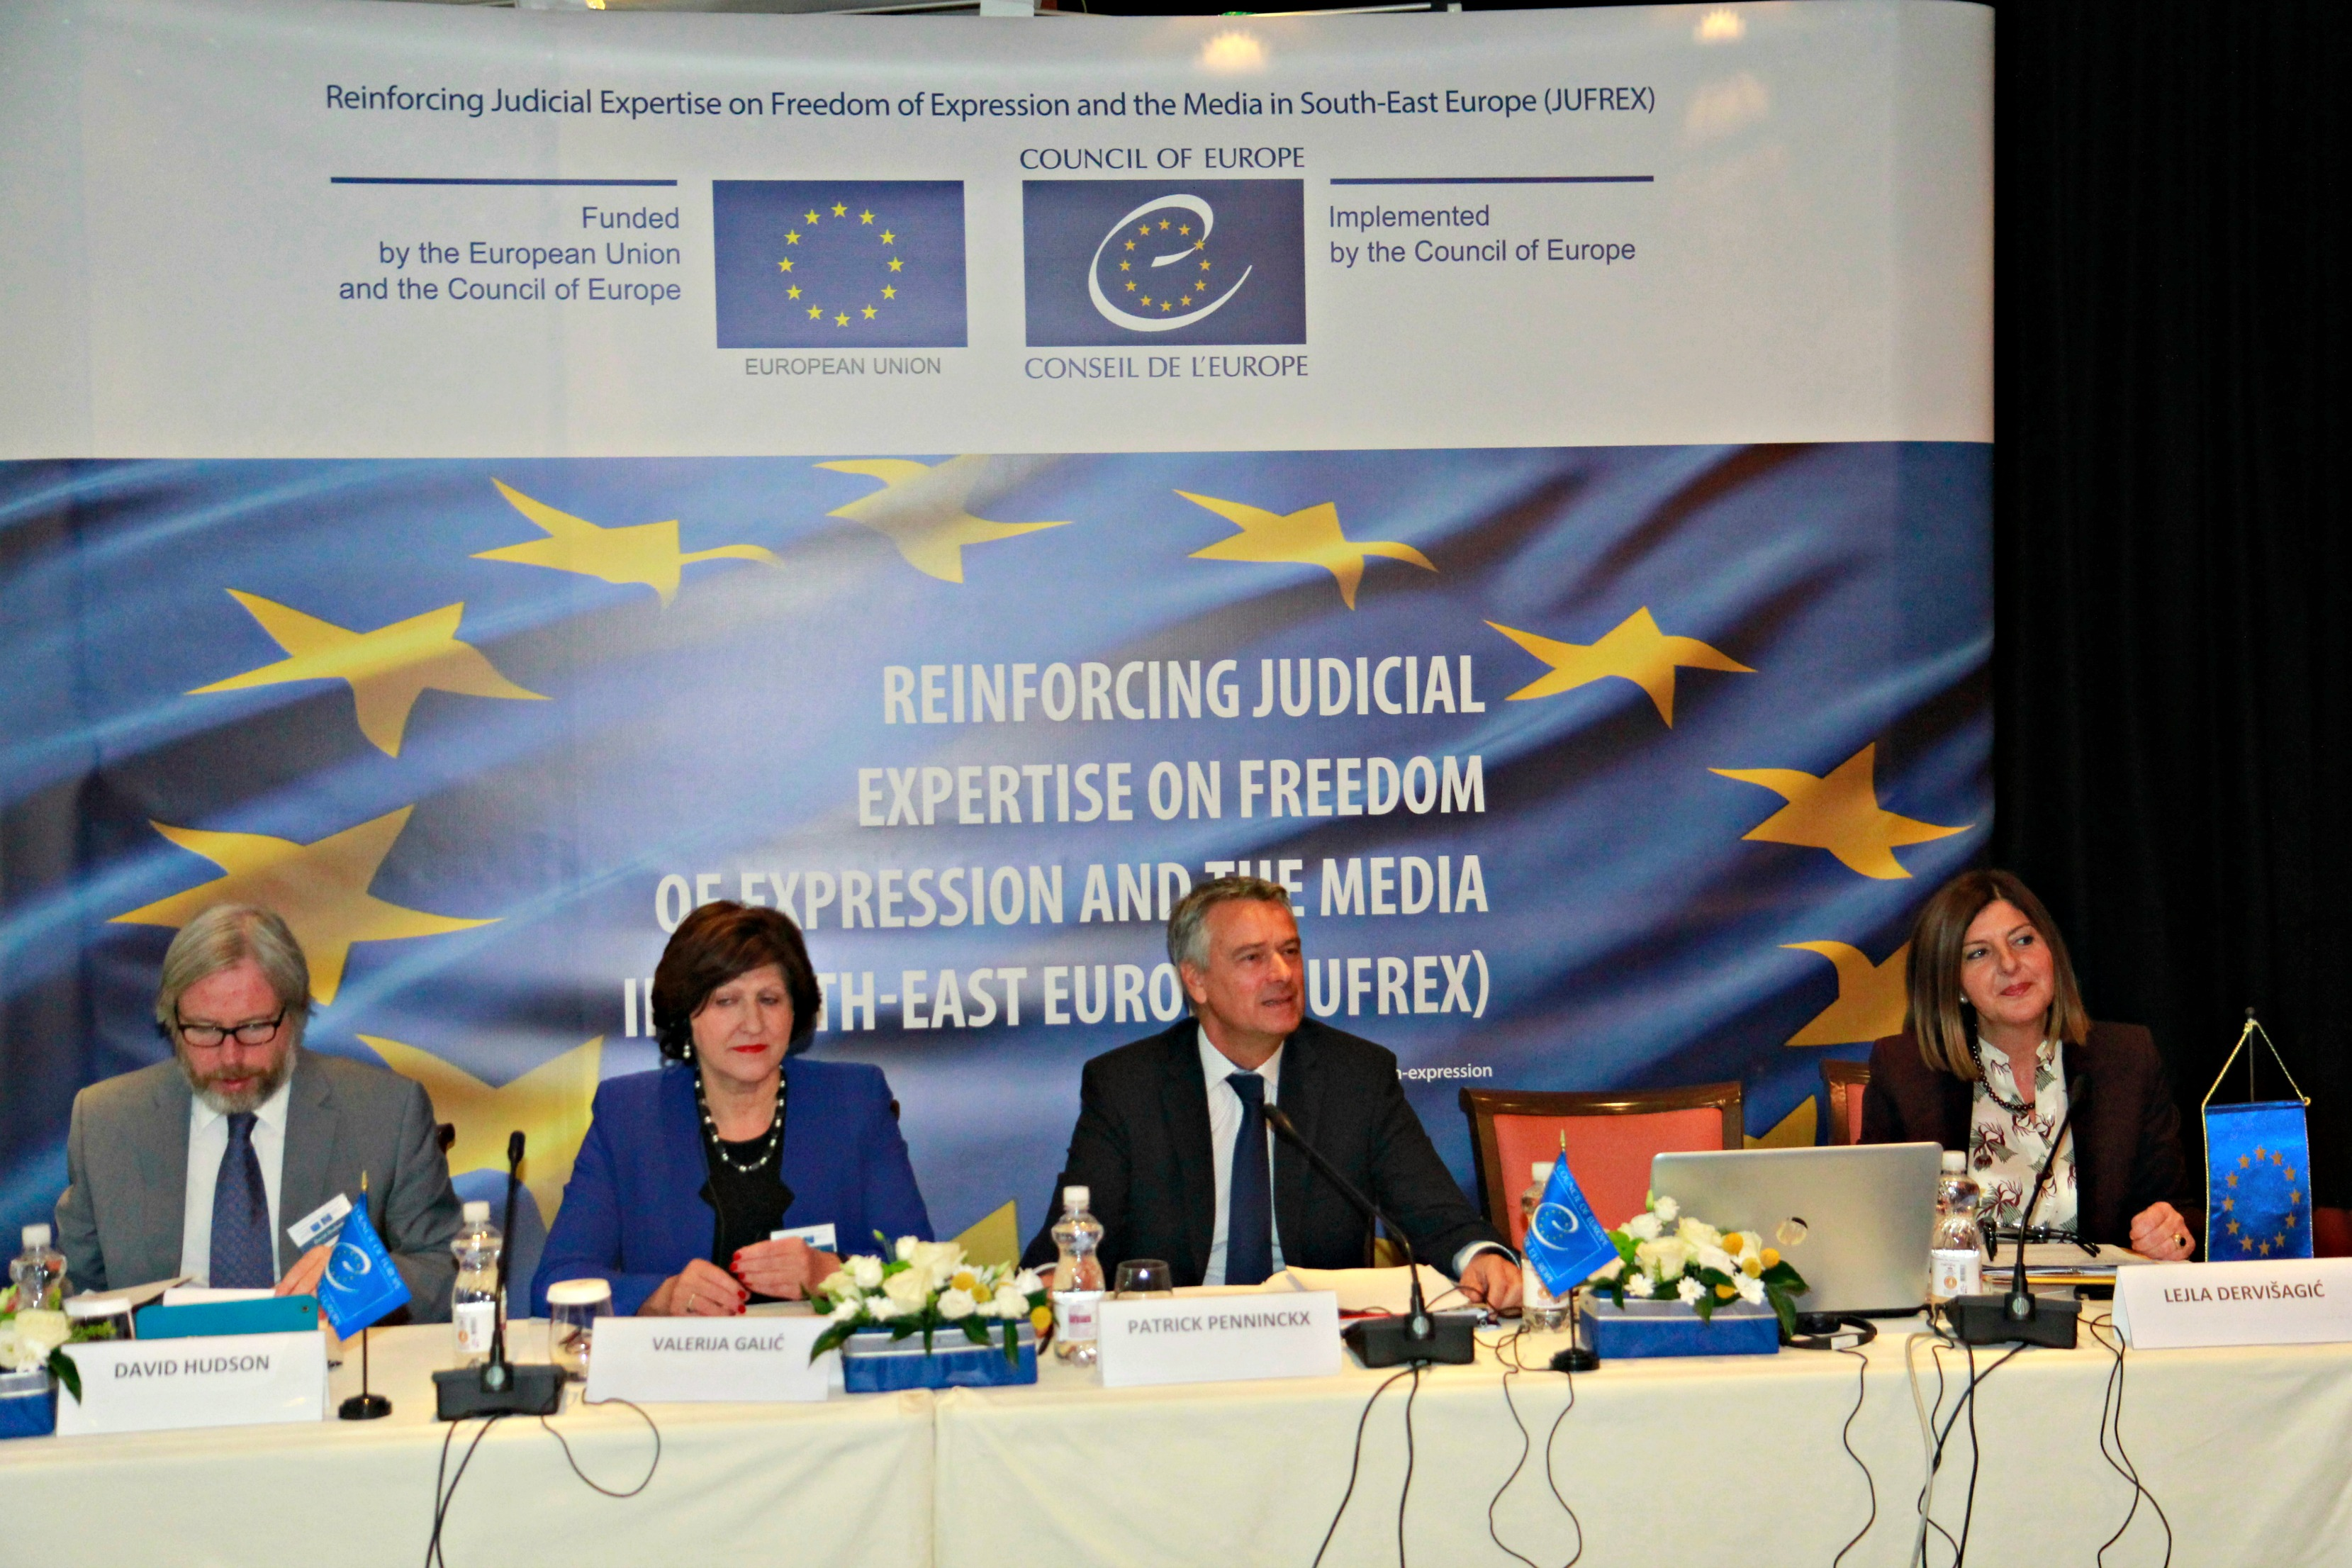 The Council of Europe launches a new initiative to strengthen standards on freedom of expression and the media in South-East Europe